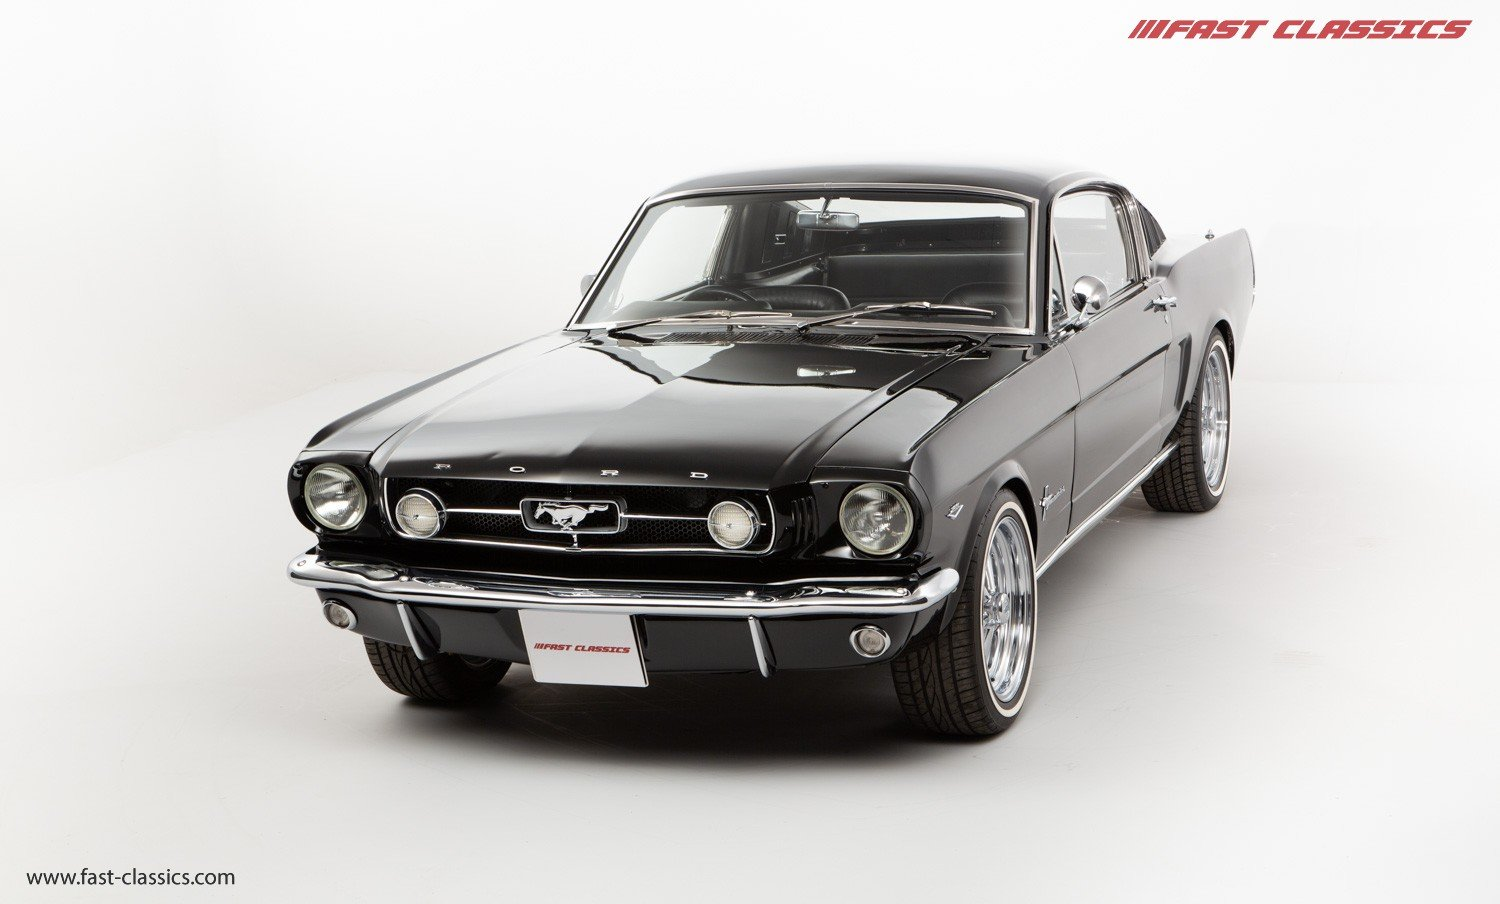 1966 FORD MUSTANG FASTBACK // 289 FASTBACK // RHD CONVERSION  For Sale (picture 3 of 22)